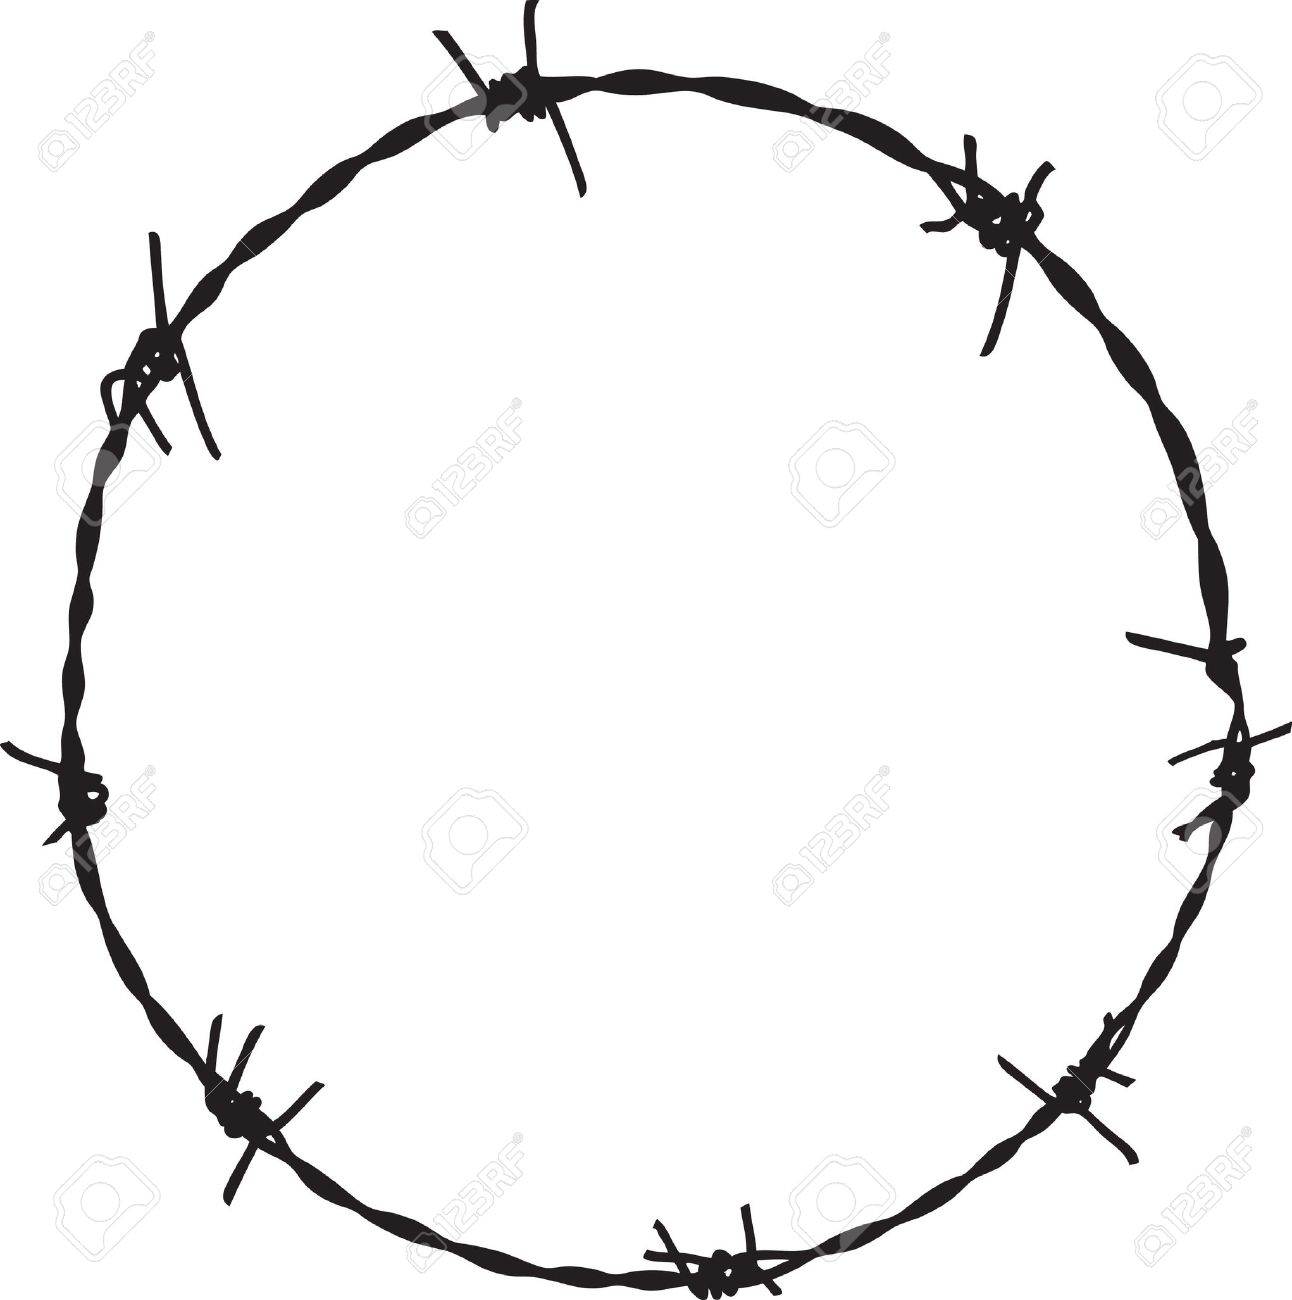 barbwire frame royalty free cliparts vectors and stock rh 123rf com barbed wire vector art free barbed wire vector art free